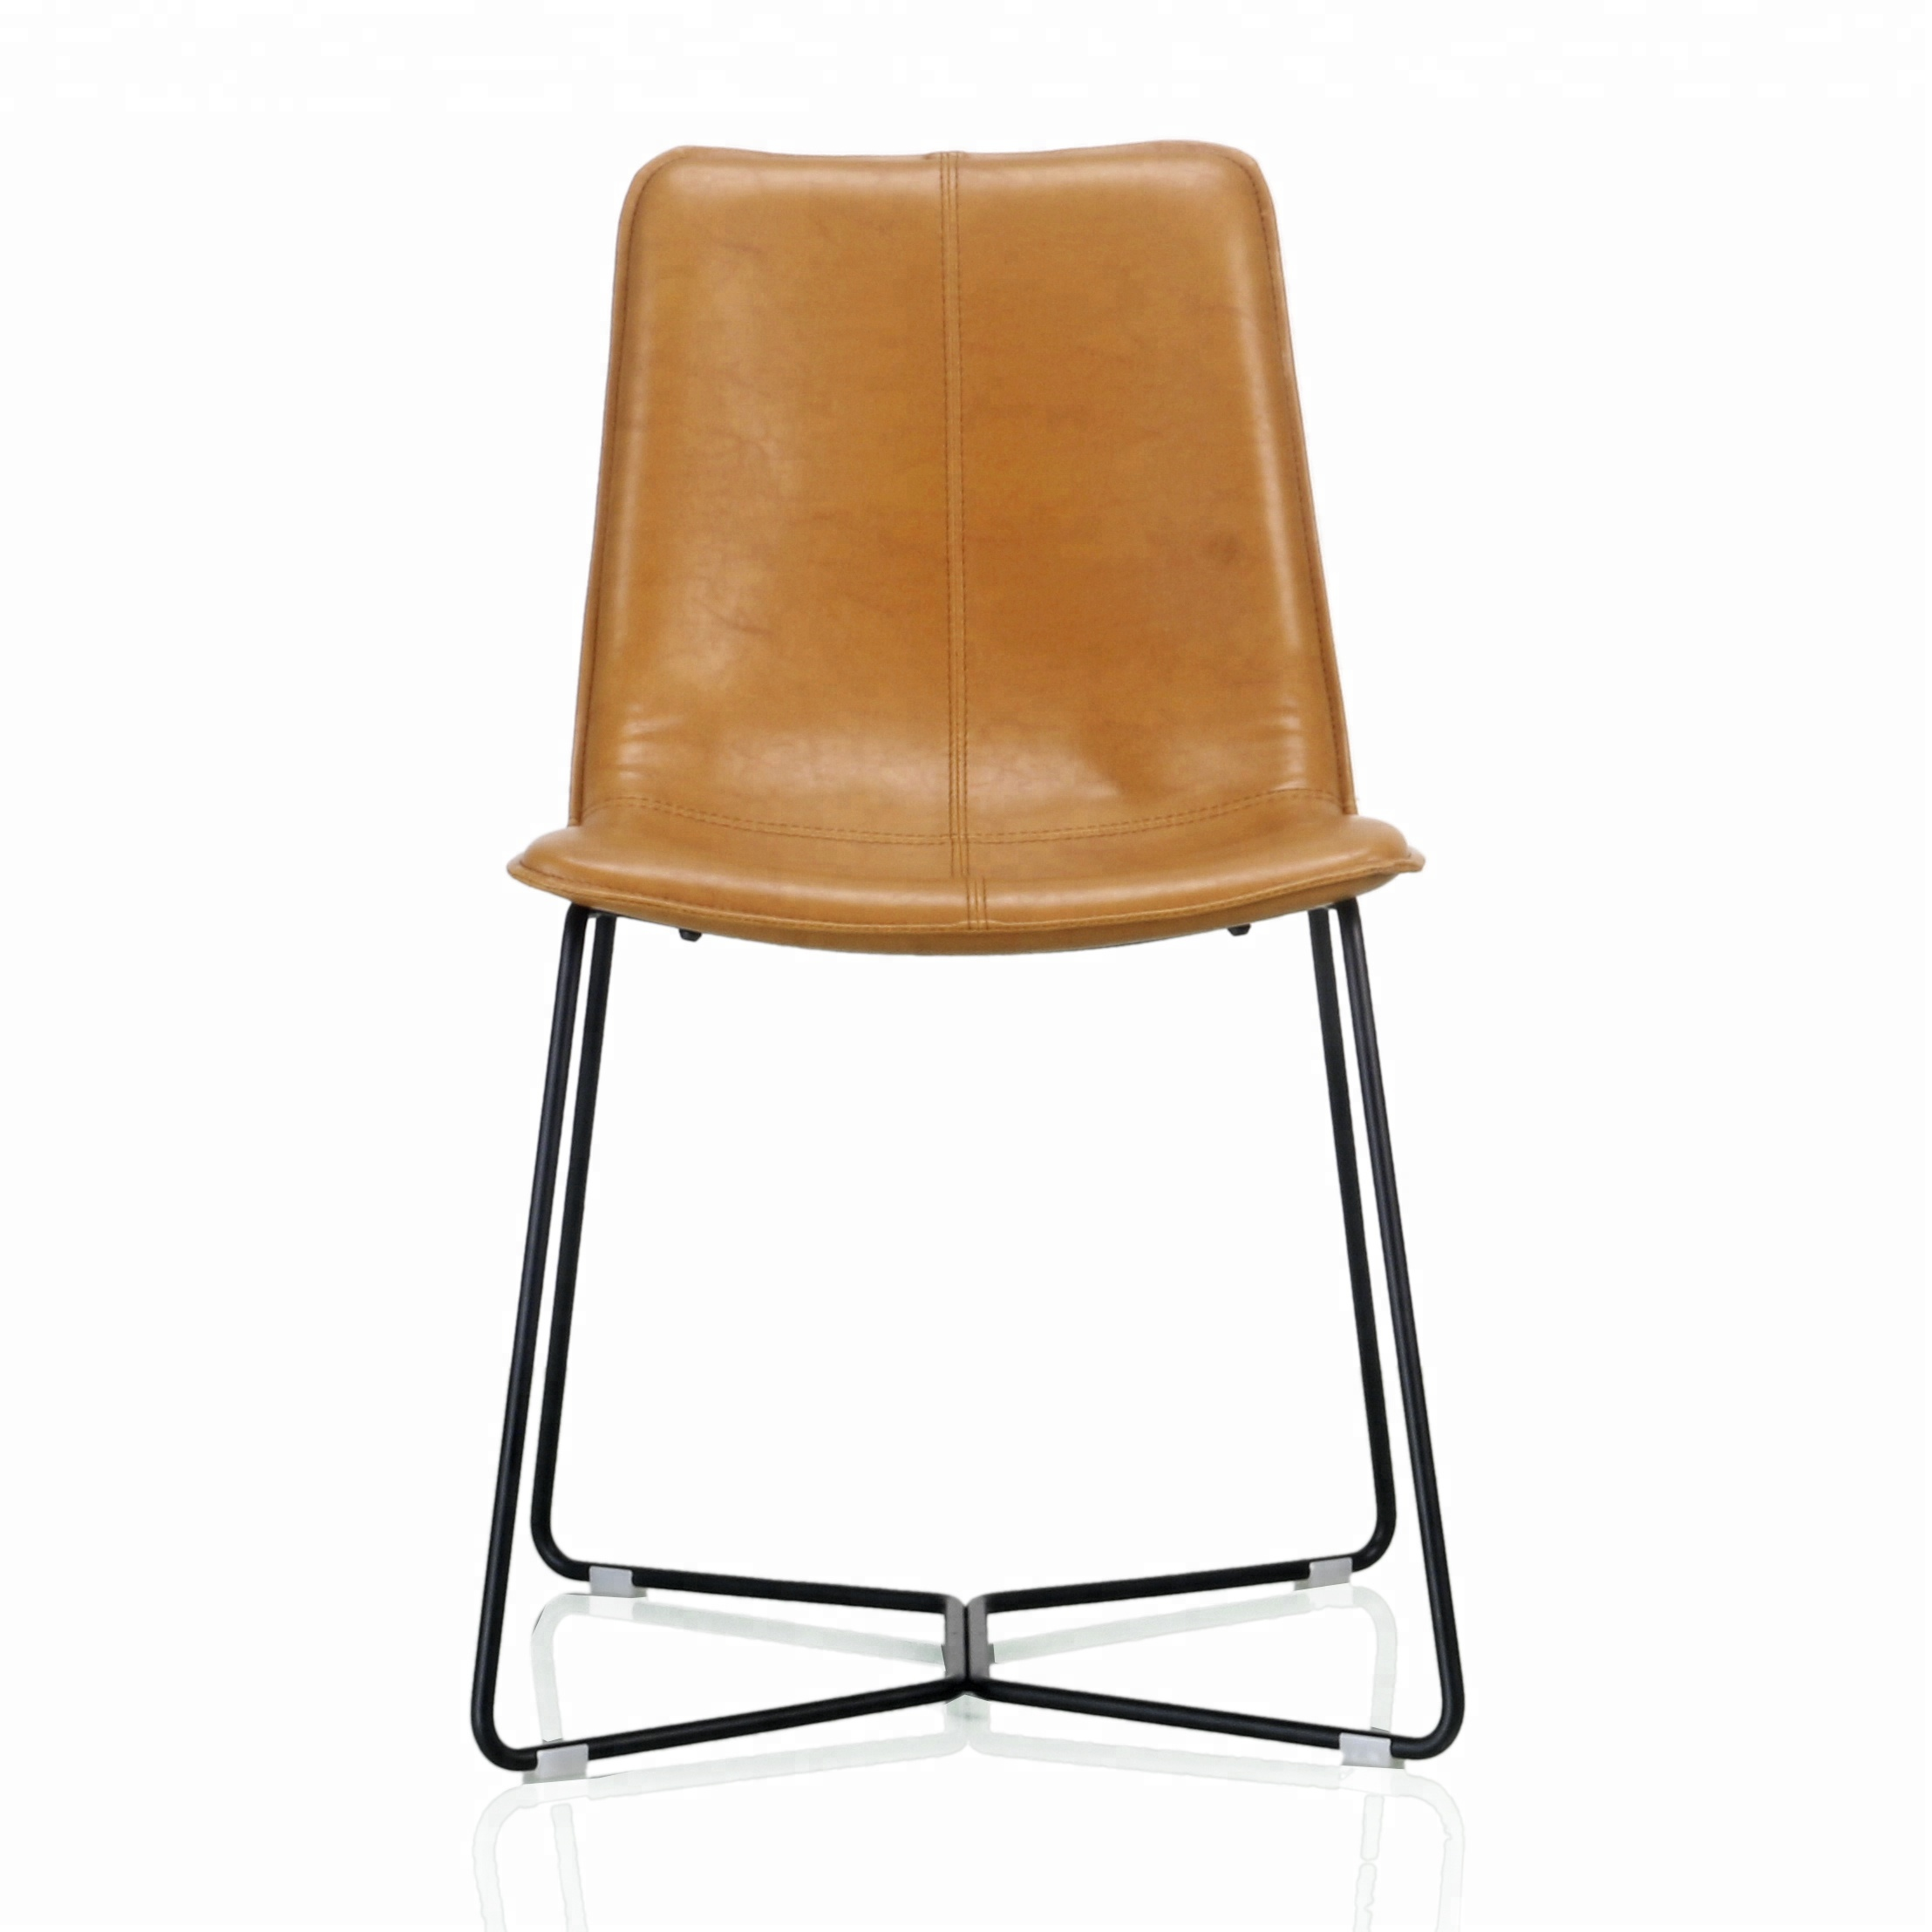 Specific use leisure furniture modern leather dining <strong>chair</strong>